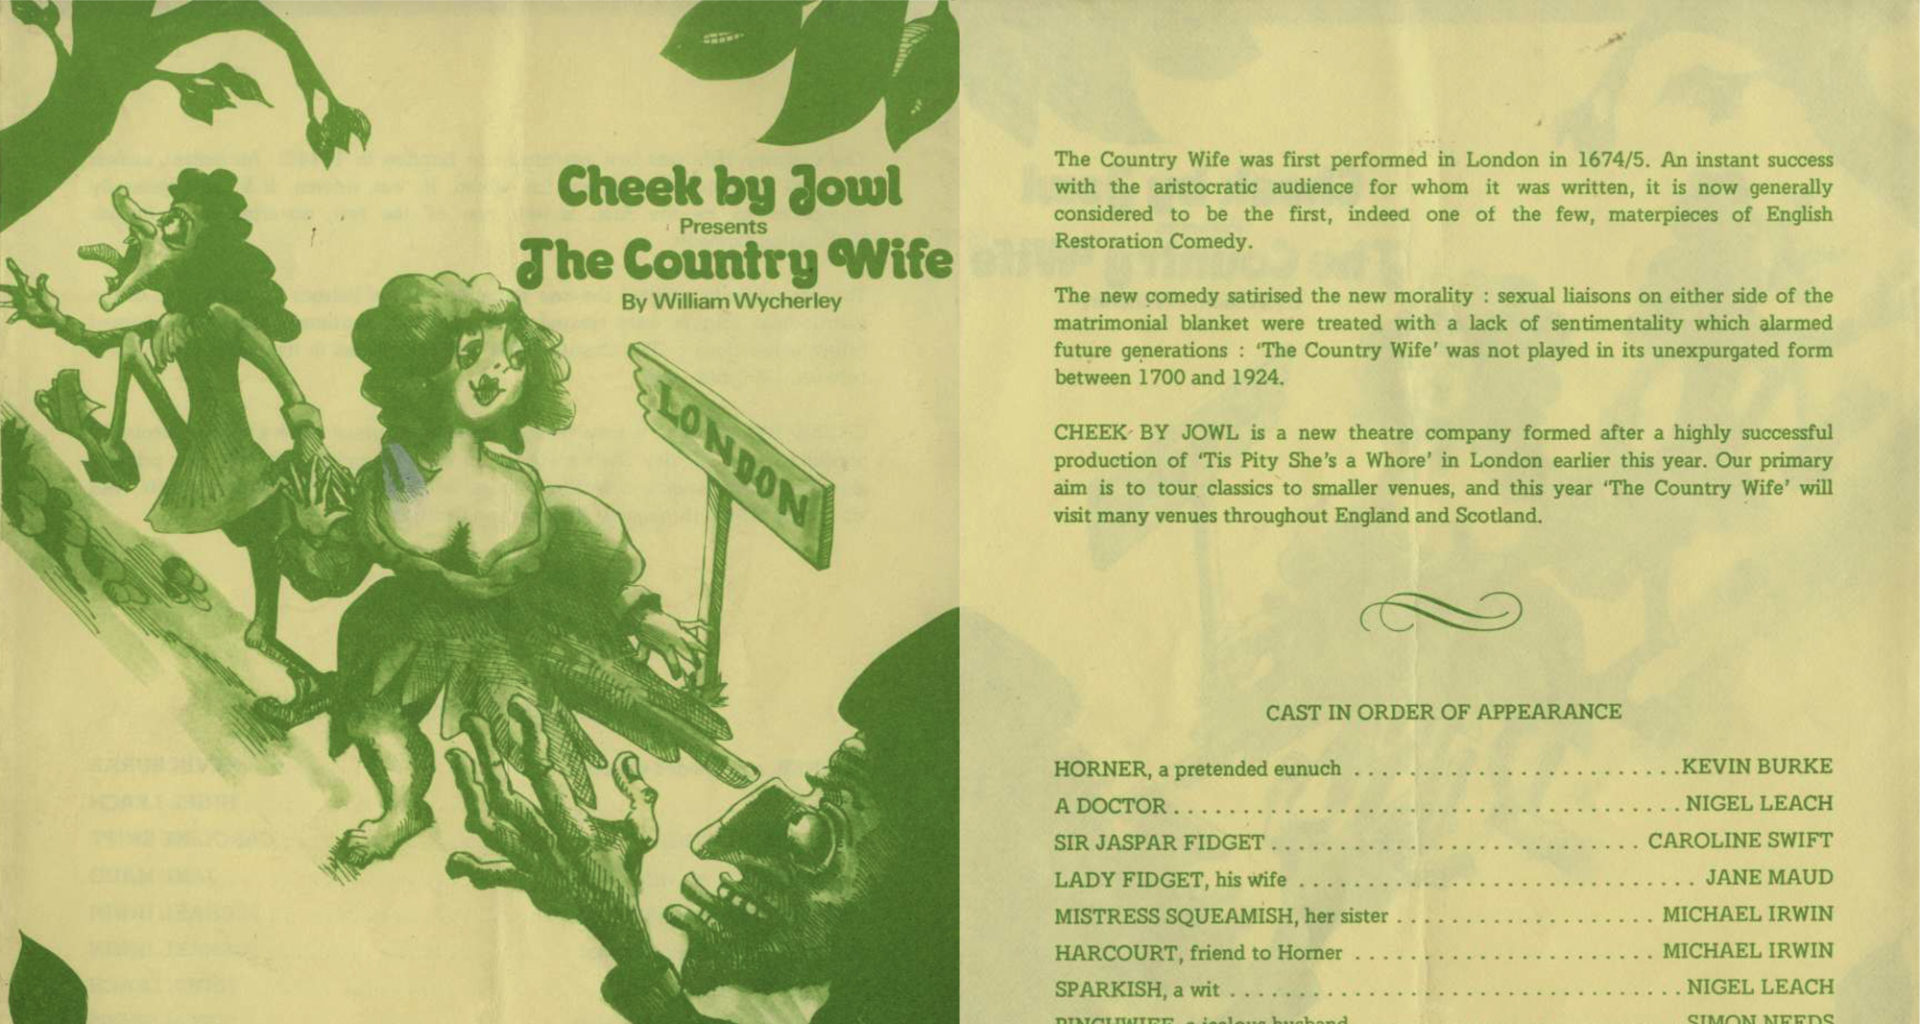 Programme for Cheek by Jowl's first production, The Country Wife (version 2)